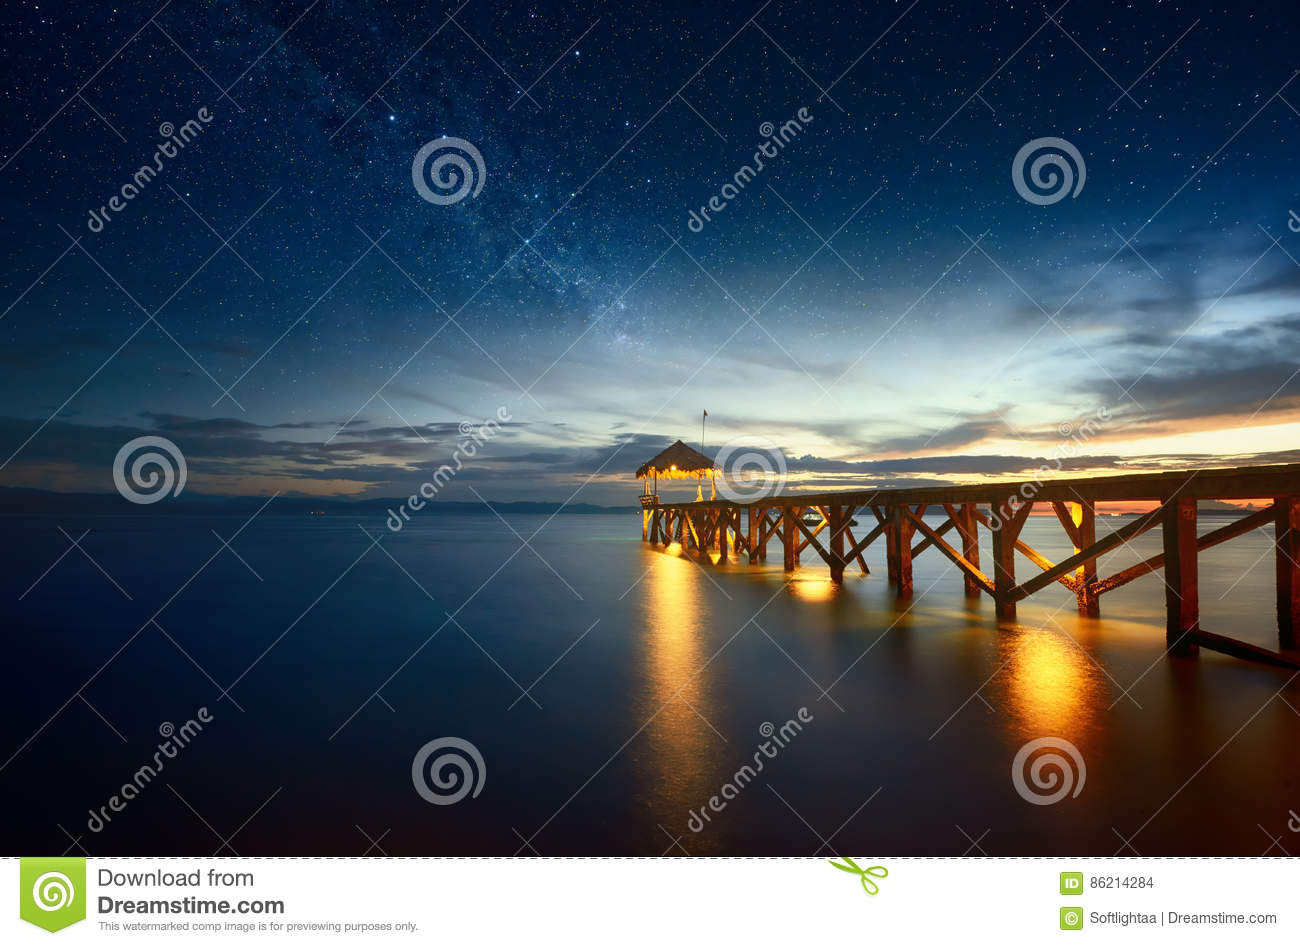 Beautiful night seascape with milky way in the sky and pier stretching into the ocean.